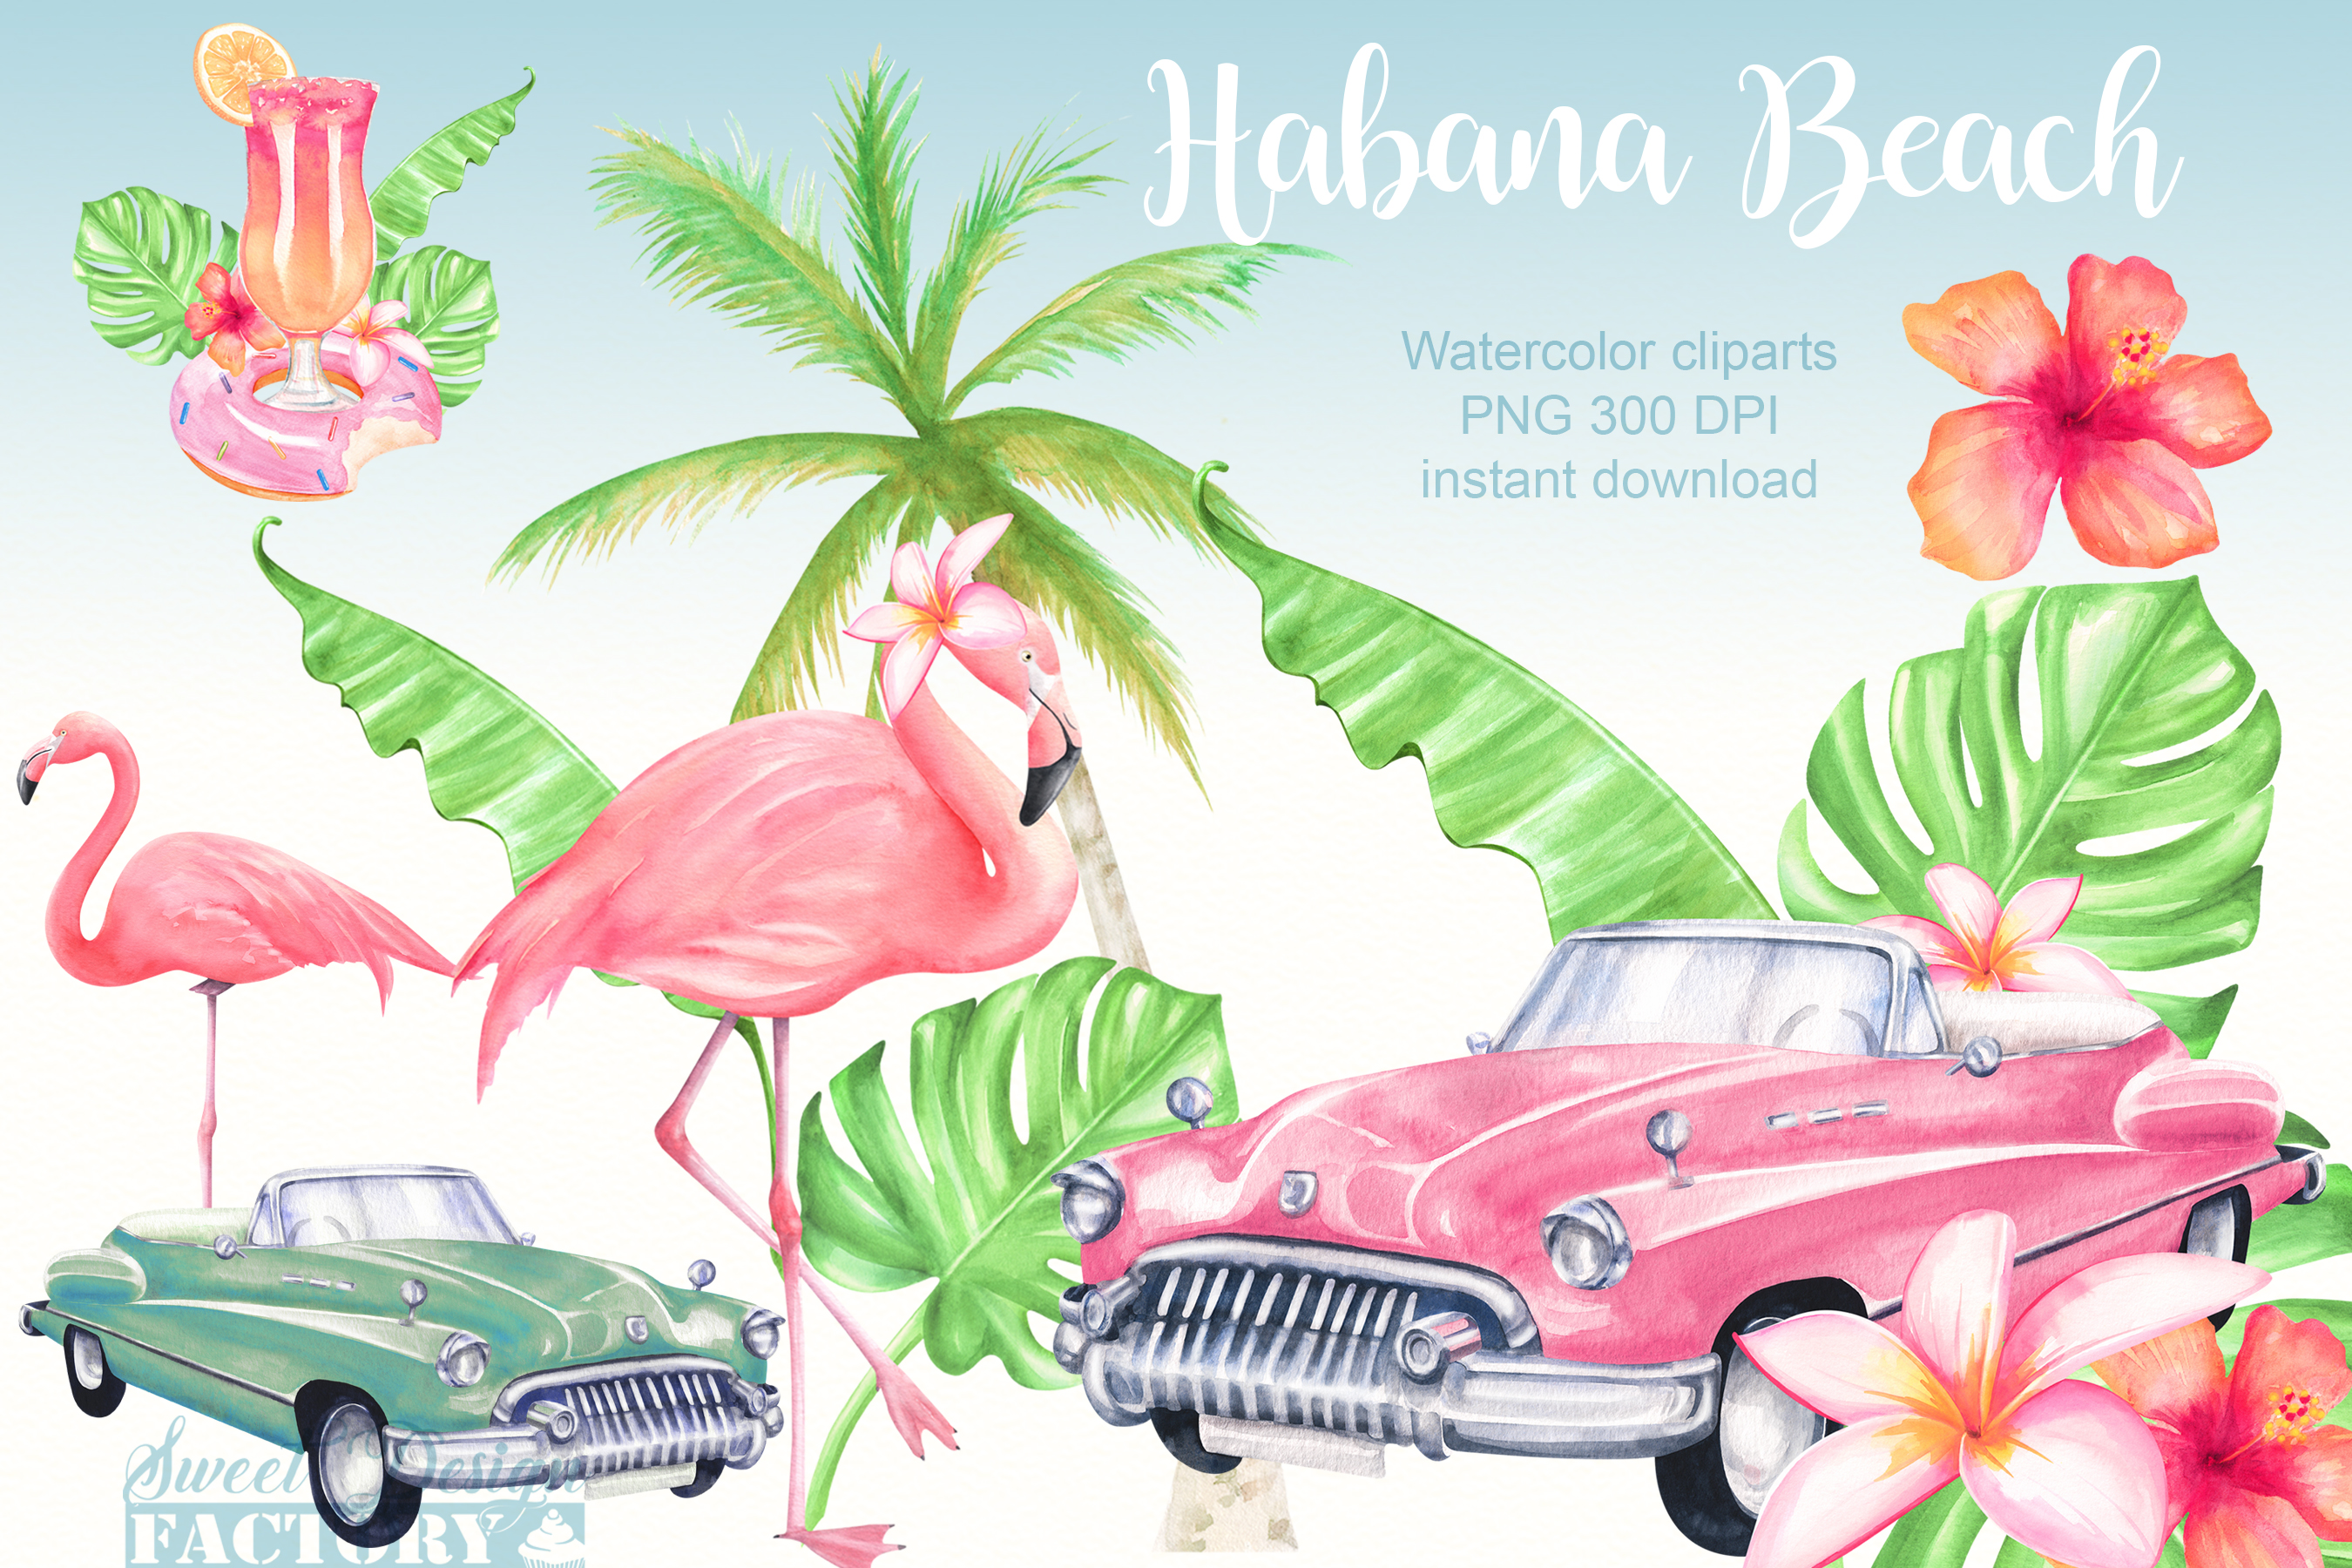 Watercolor flamingos and retro cars summer clipartS example image 1